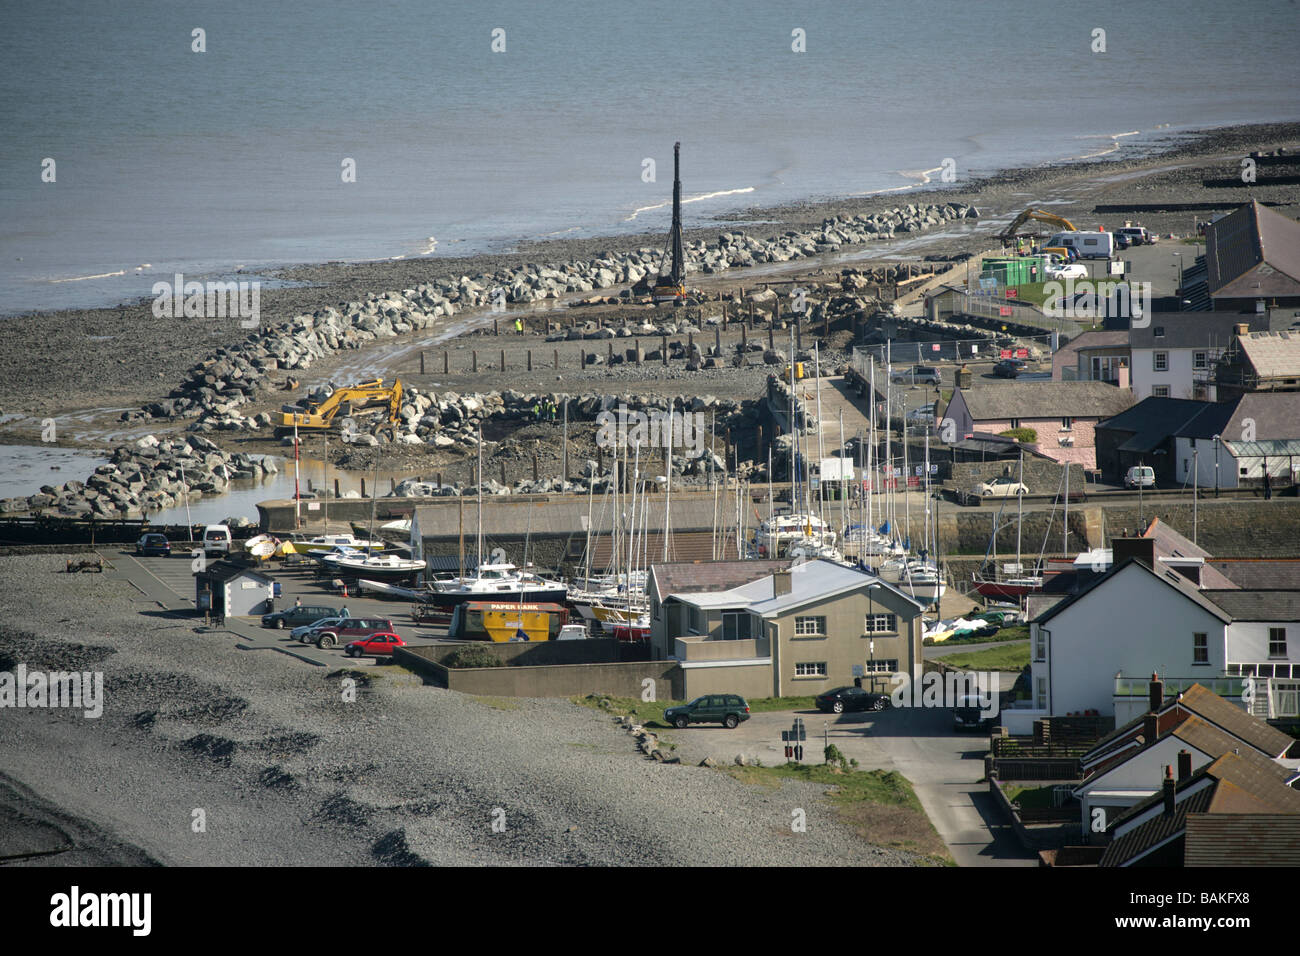 Town of Aberaeron, Wales. Distant aerial view of sea defences construction works at Aberaeron seafront. - Stock Image